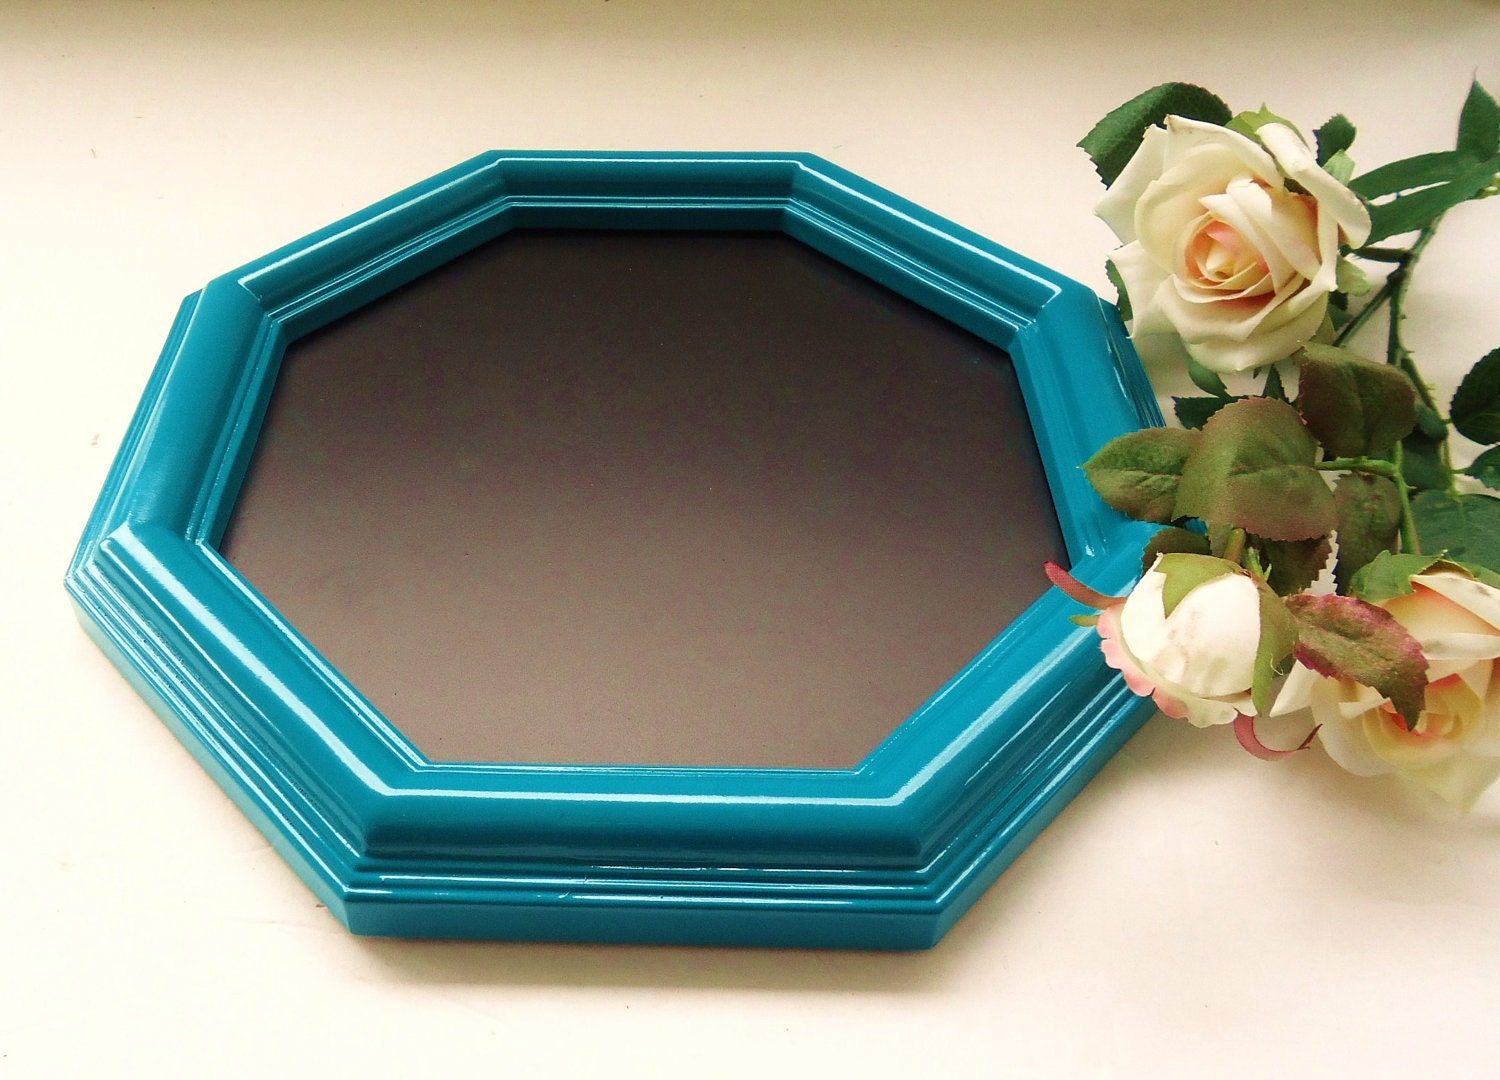 Ornate Teal Chalkboard - Wedding Chalkboard - Framed Chalkboard -Small Chalkboard -Table Chalkboard -Shabby Chic Chalkboard -Aqua